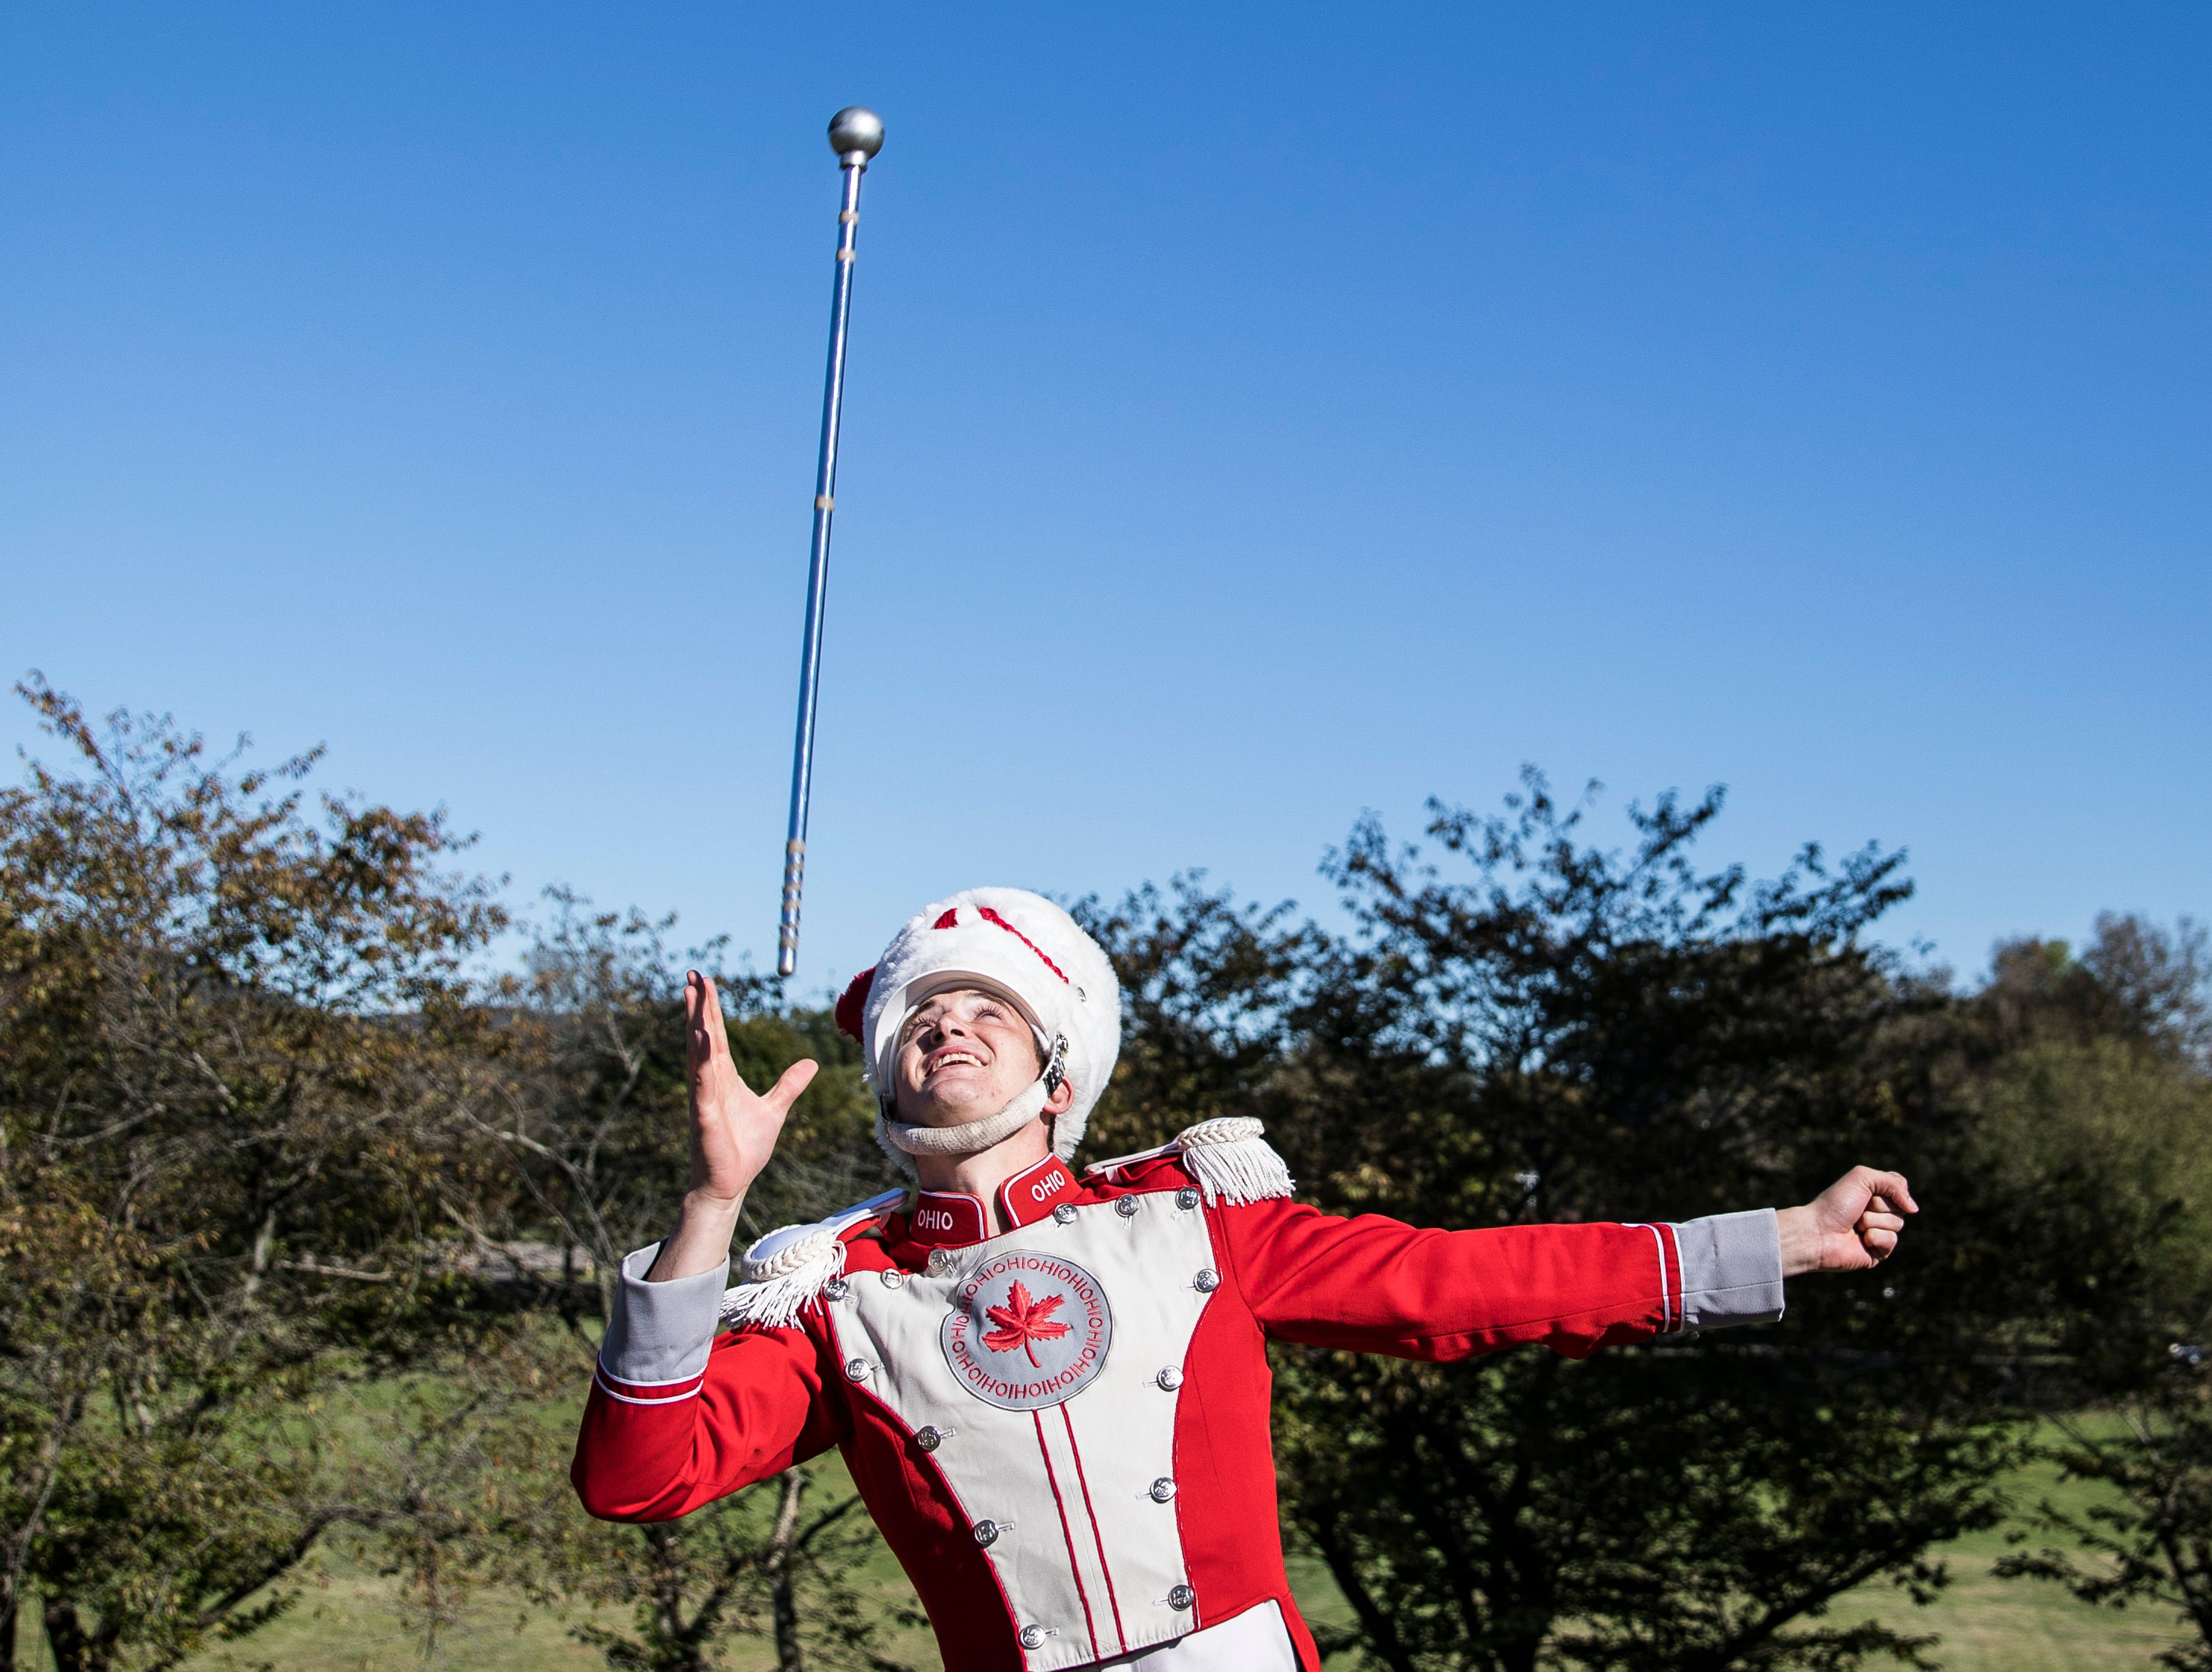 Drum major Konner Barr practices at Chillicothe Middle School before THE Ohio State Band perform at Herrnstein Field in Chillicothe Sunday afternoon.